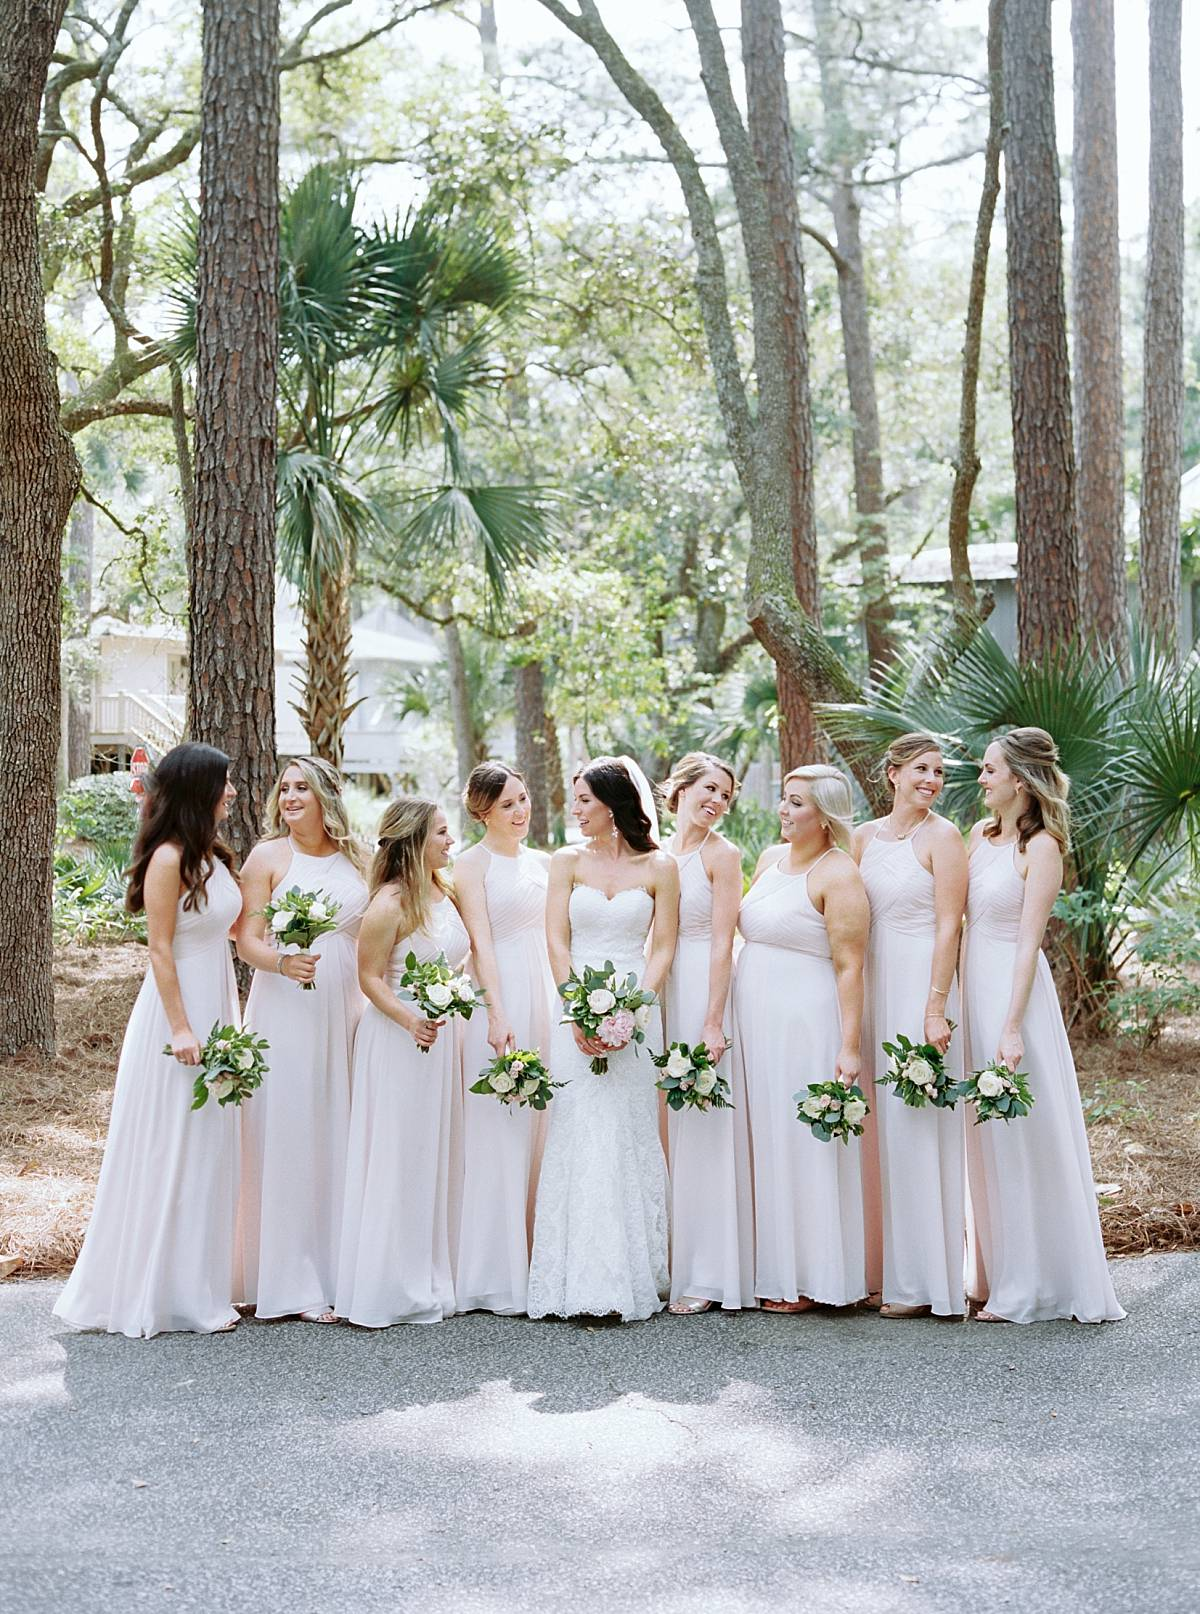 contax 645 bridal party in blush bridesmaids dresses on kiawah island for charleston wedding